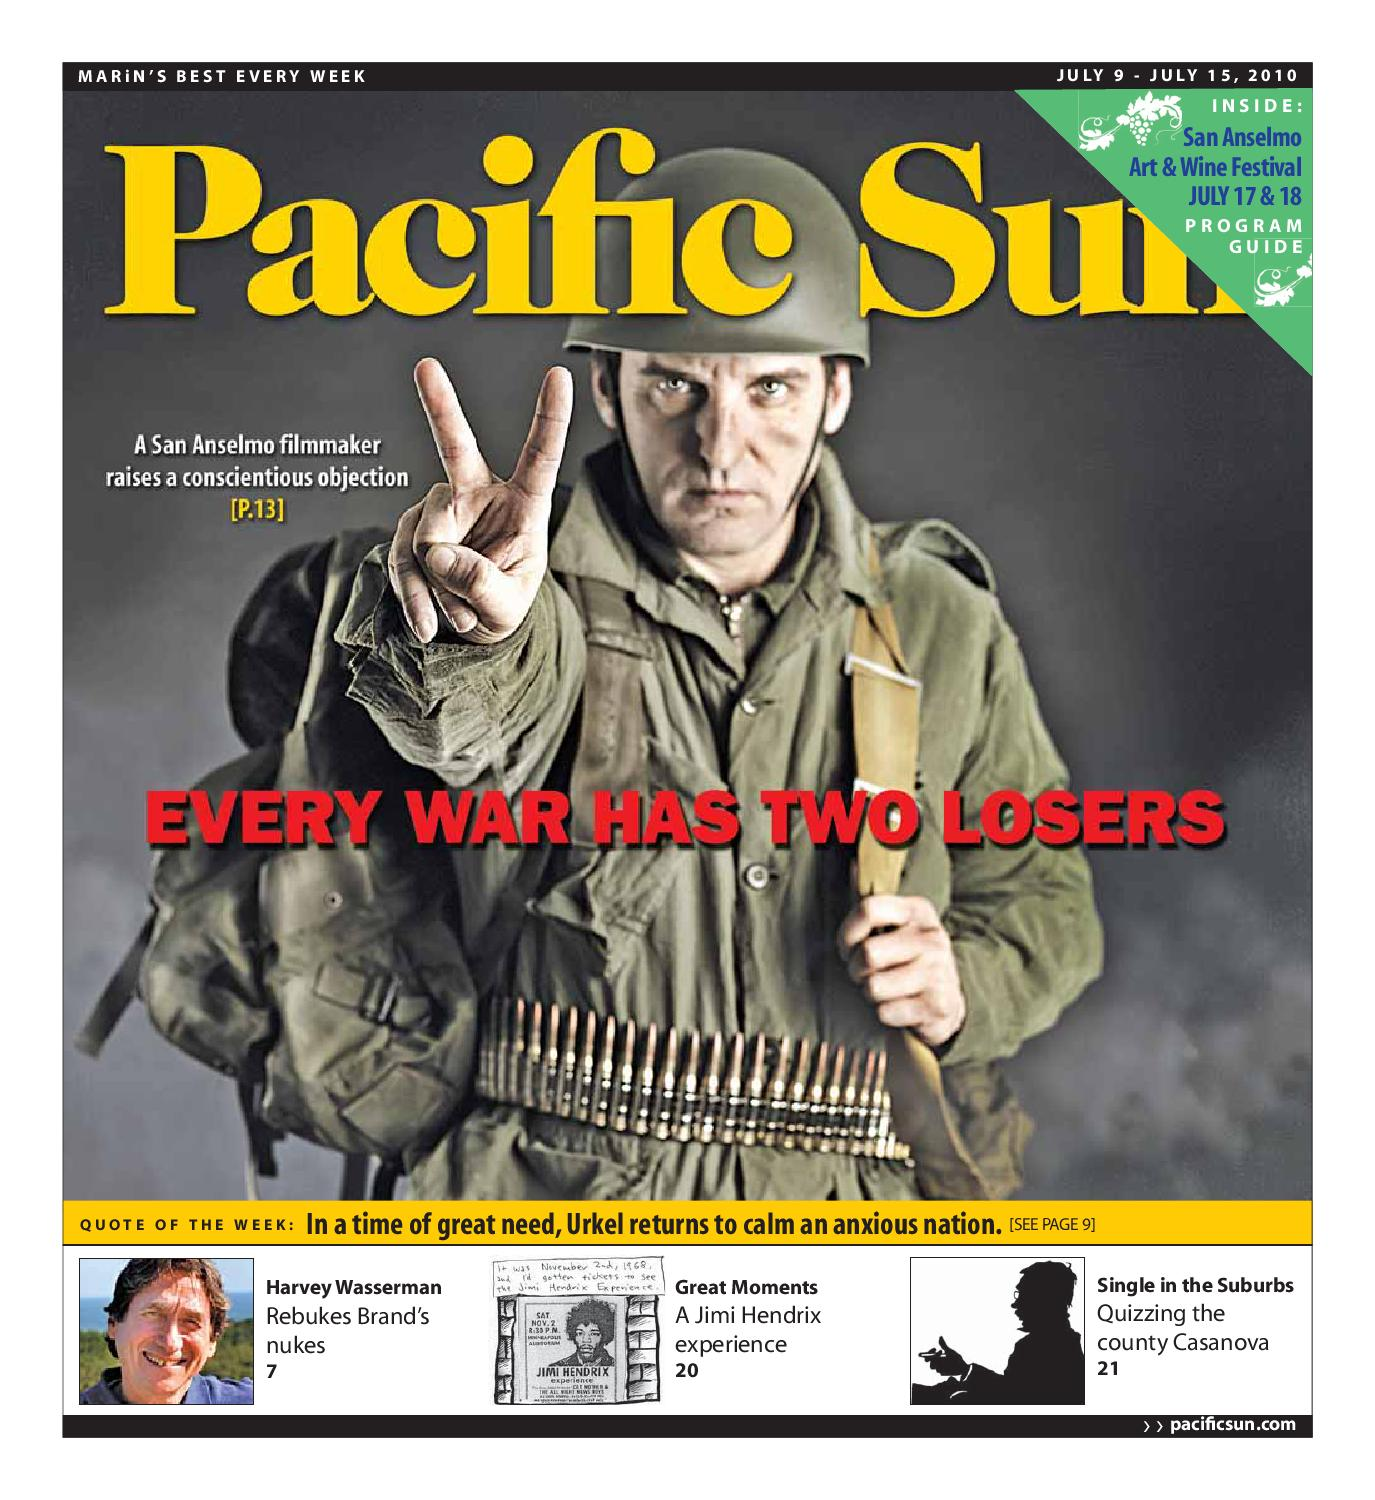 Pacific Sun 07.09.2010 - Section 1 by Pacific Sun - Issuu